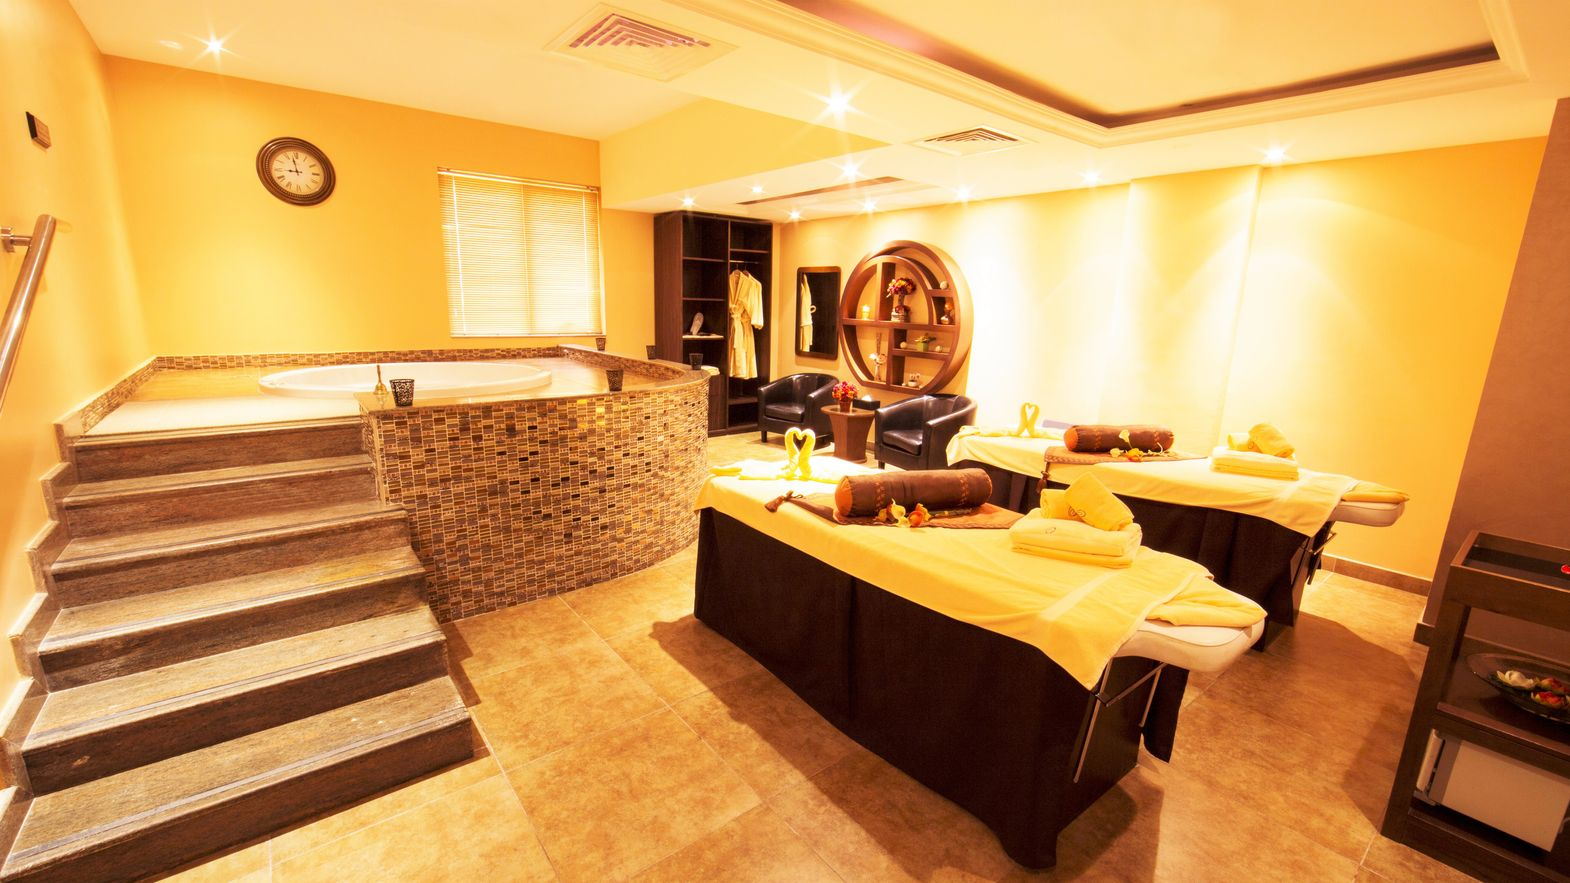 Spa at Ivory Grand Hotel Apartments - Citybase Apartments